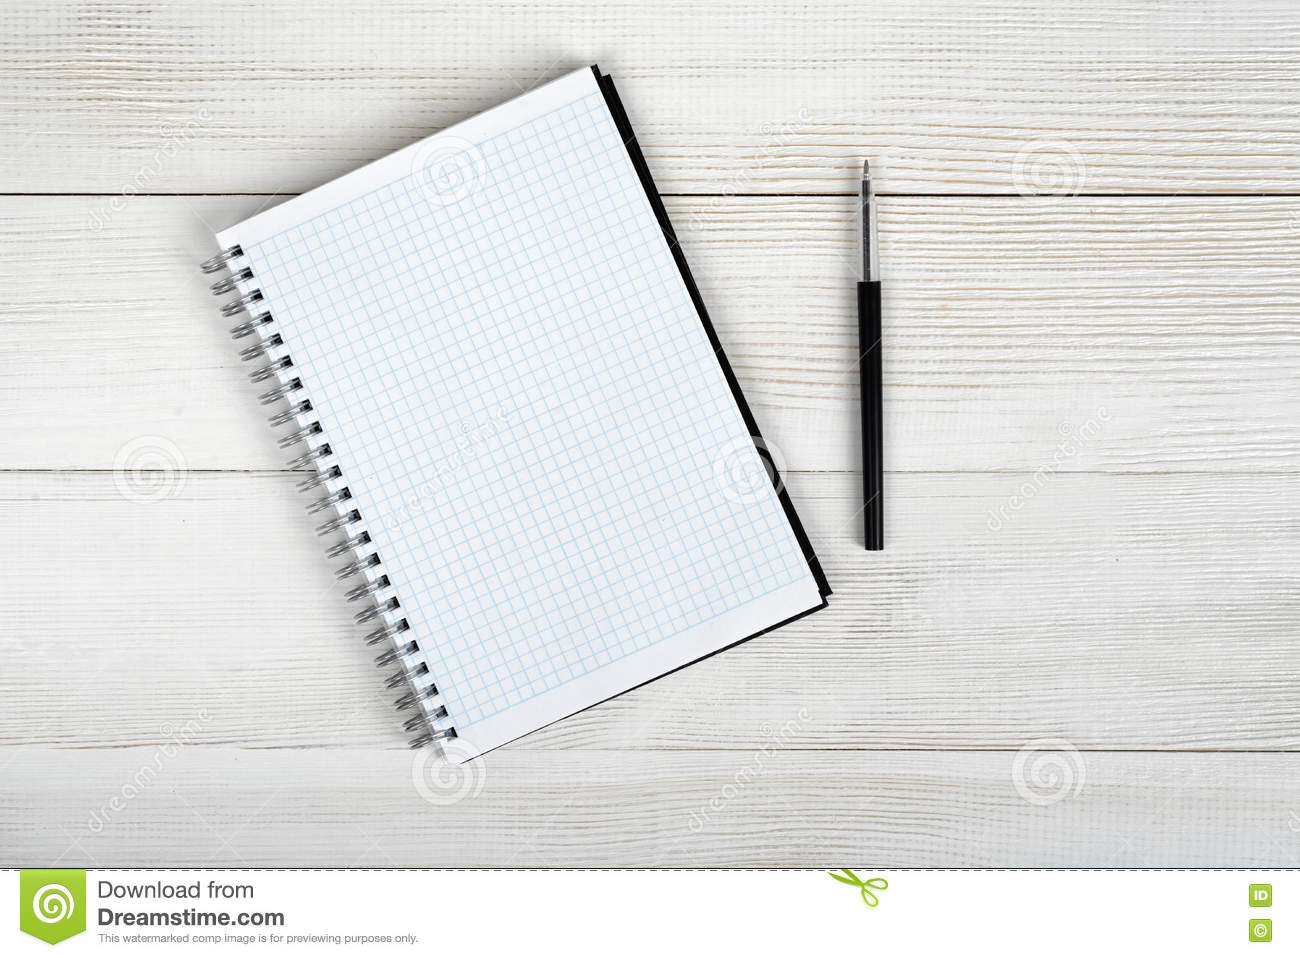 Notebook And Pen Sketch Stock Vector Art More Images Of: Top View Of Open Empty Notebook And Black Pen. Stock Photo